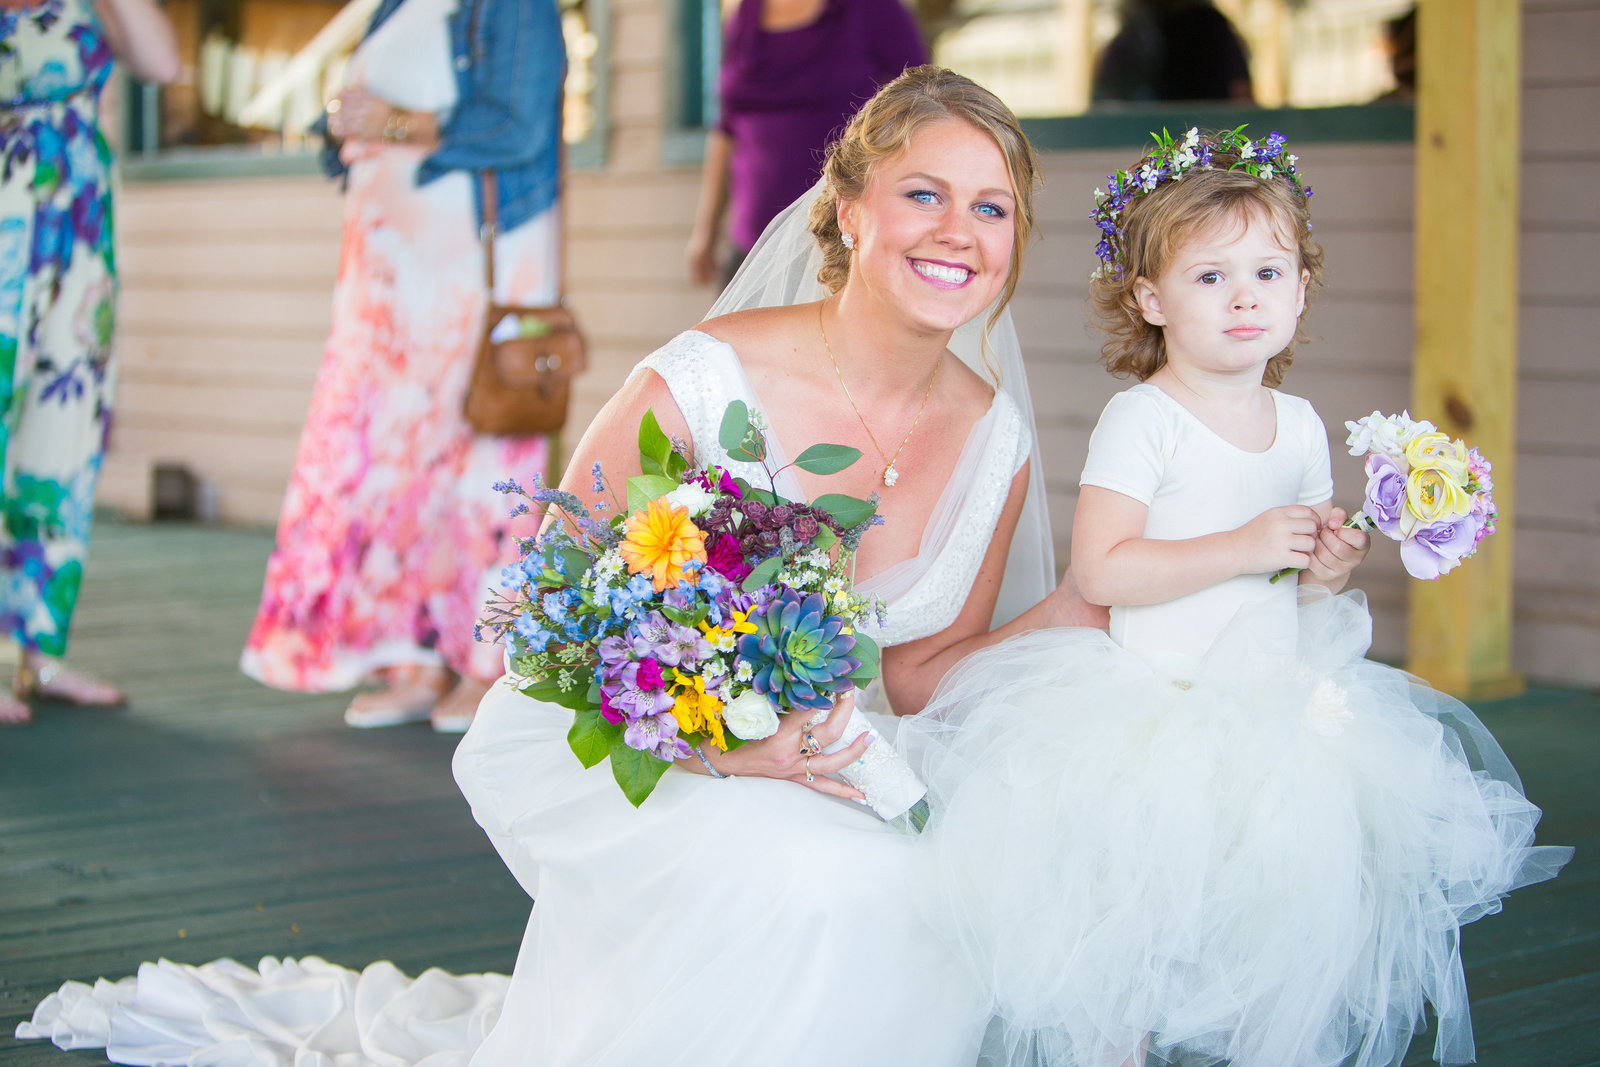 wedding photography bride and flower girl photo